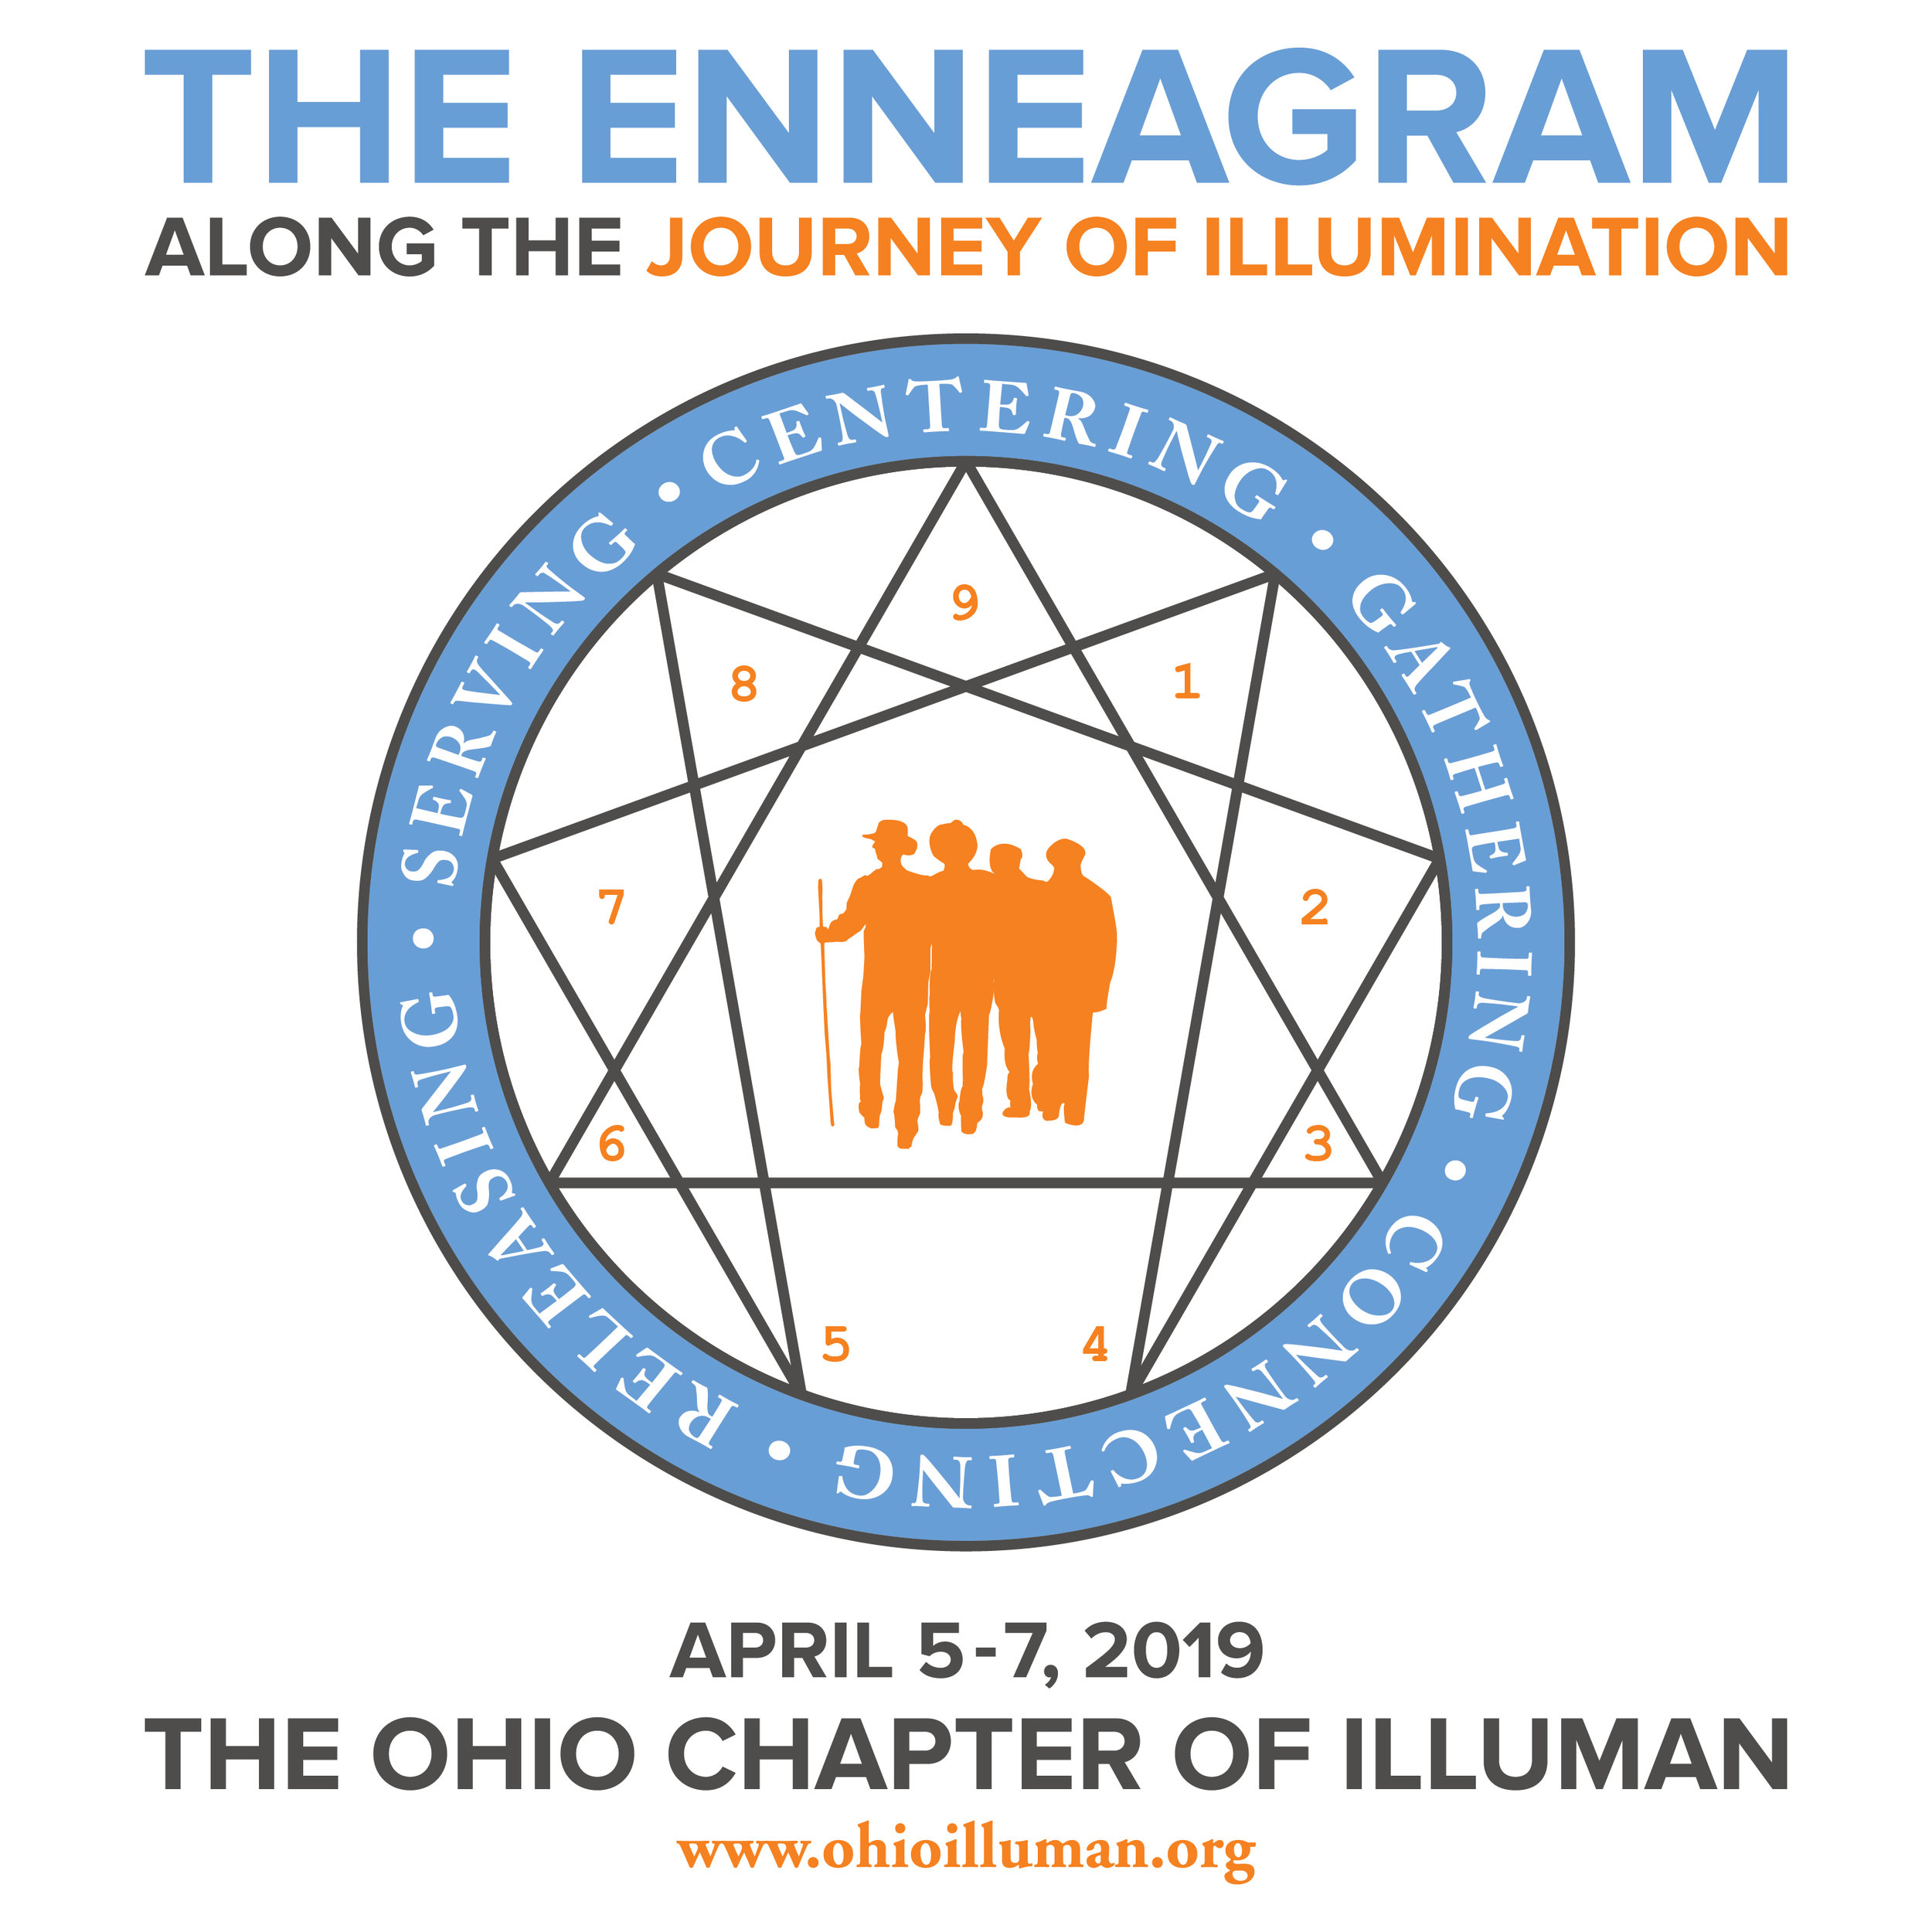 The Enneagram - Along the Journey of Illumination